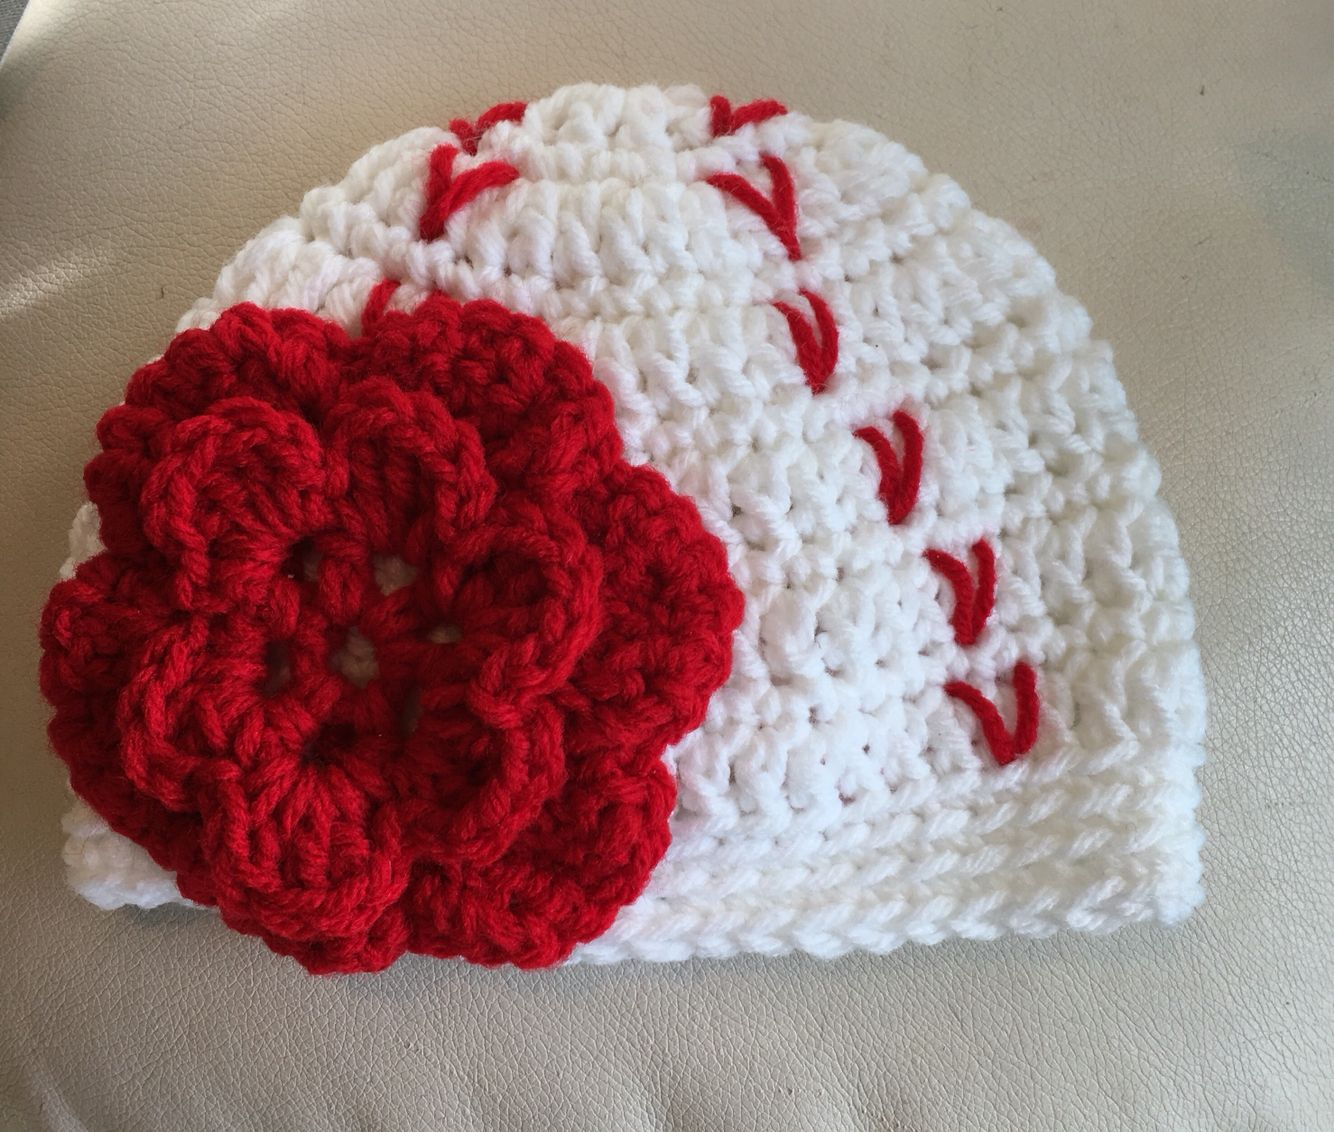 Baseball hat for baby Englynd! Used this picture to look at stitching:   https://www.pinterest.com/pin/56365432810002978/ https://www.pinterest.com/pin/56365432811156468/ Used this as the base pattern and added a flower:  https://www.pinterest.com/pin/56365432807034936/